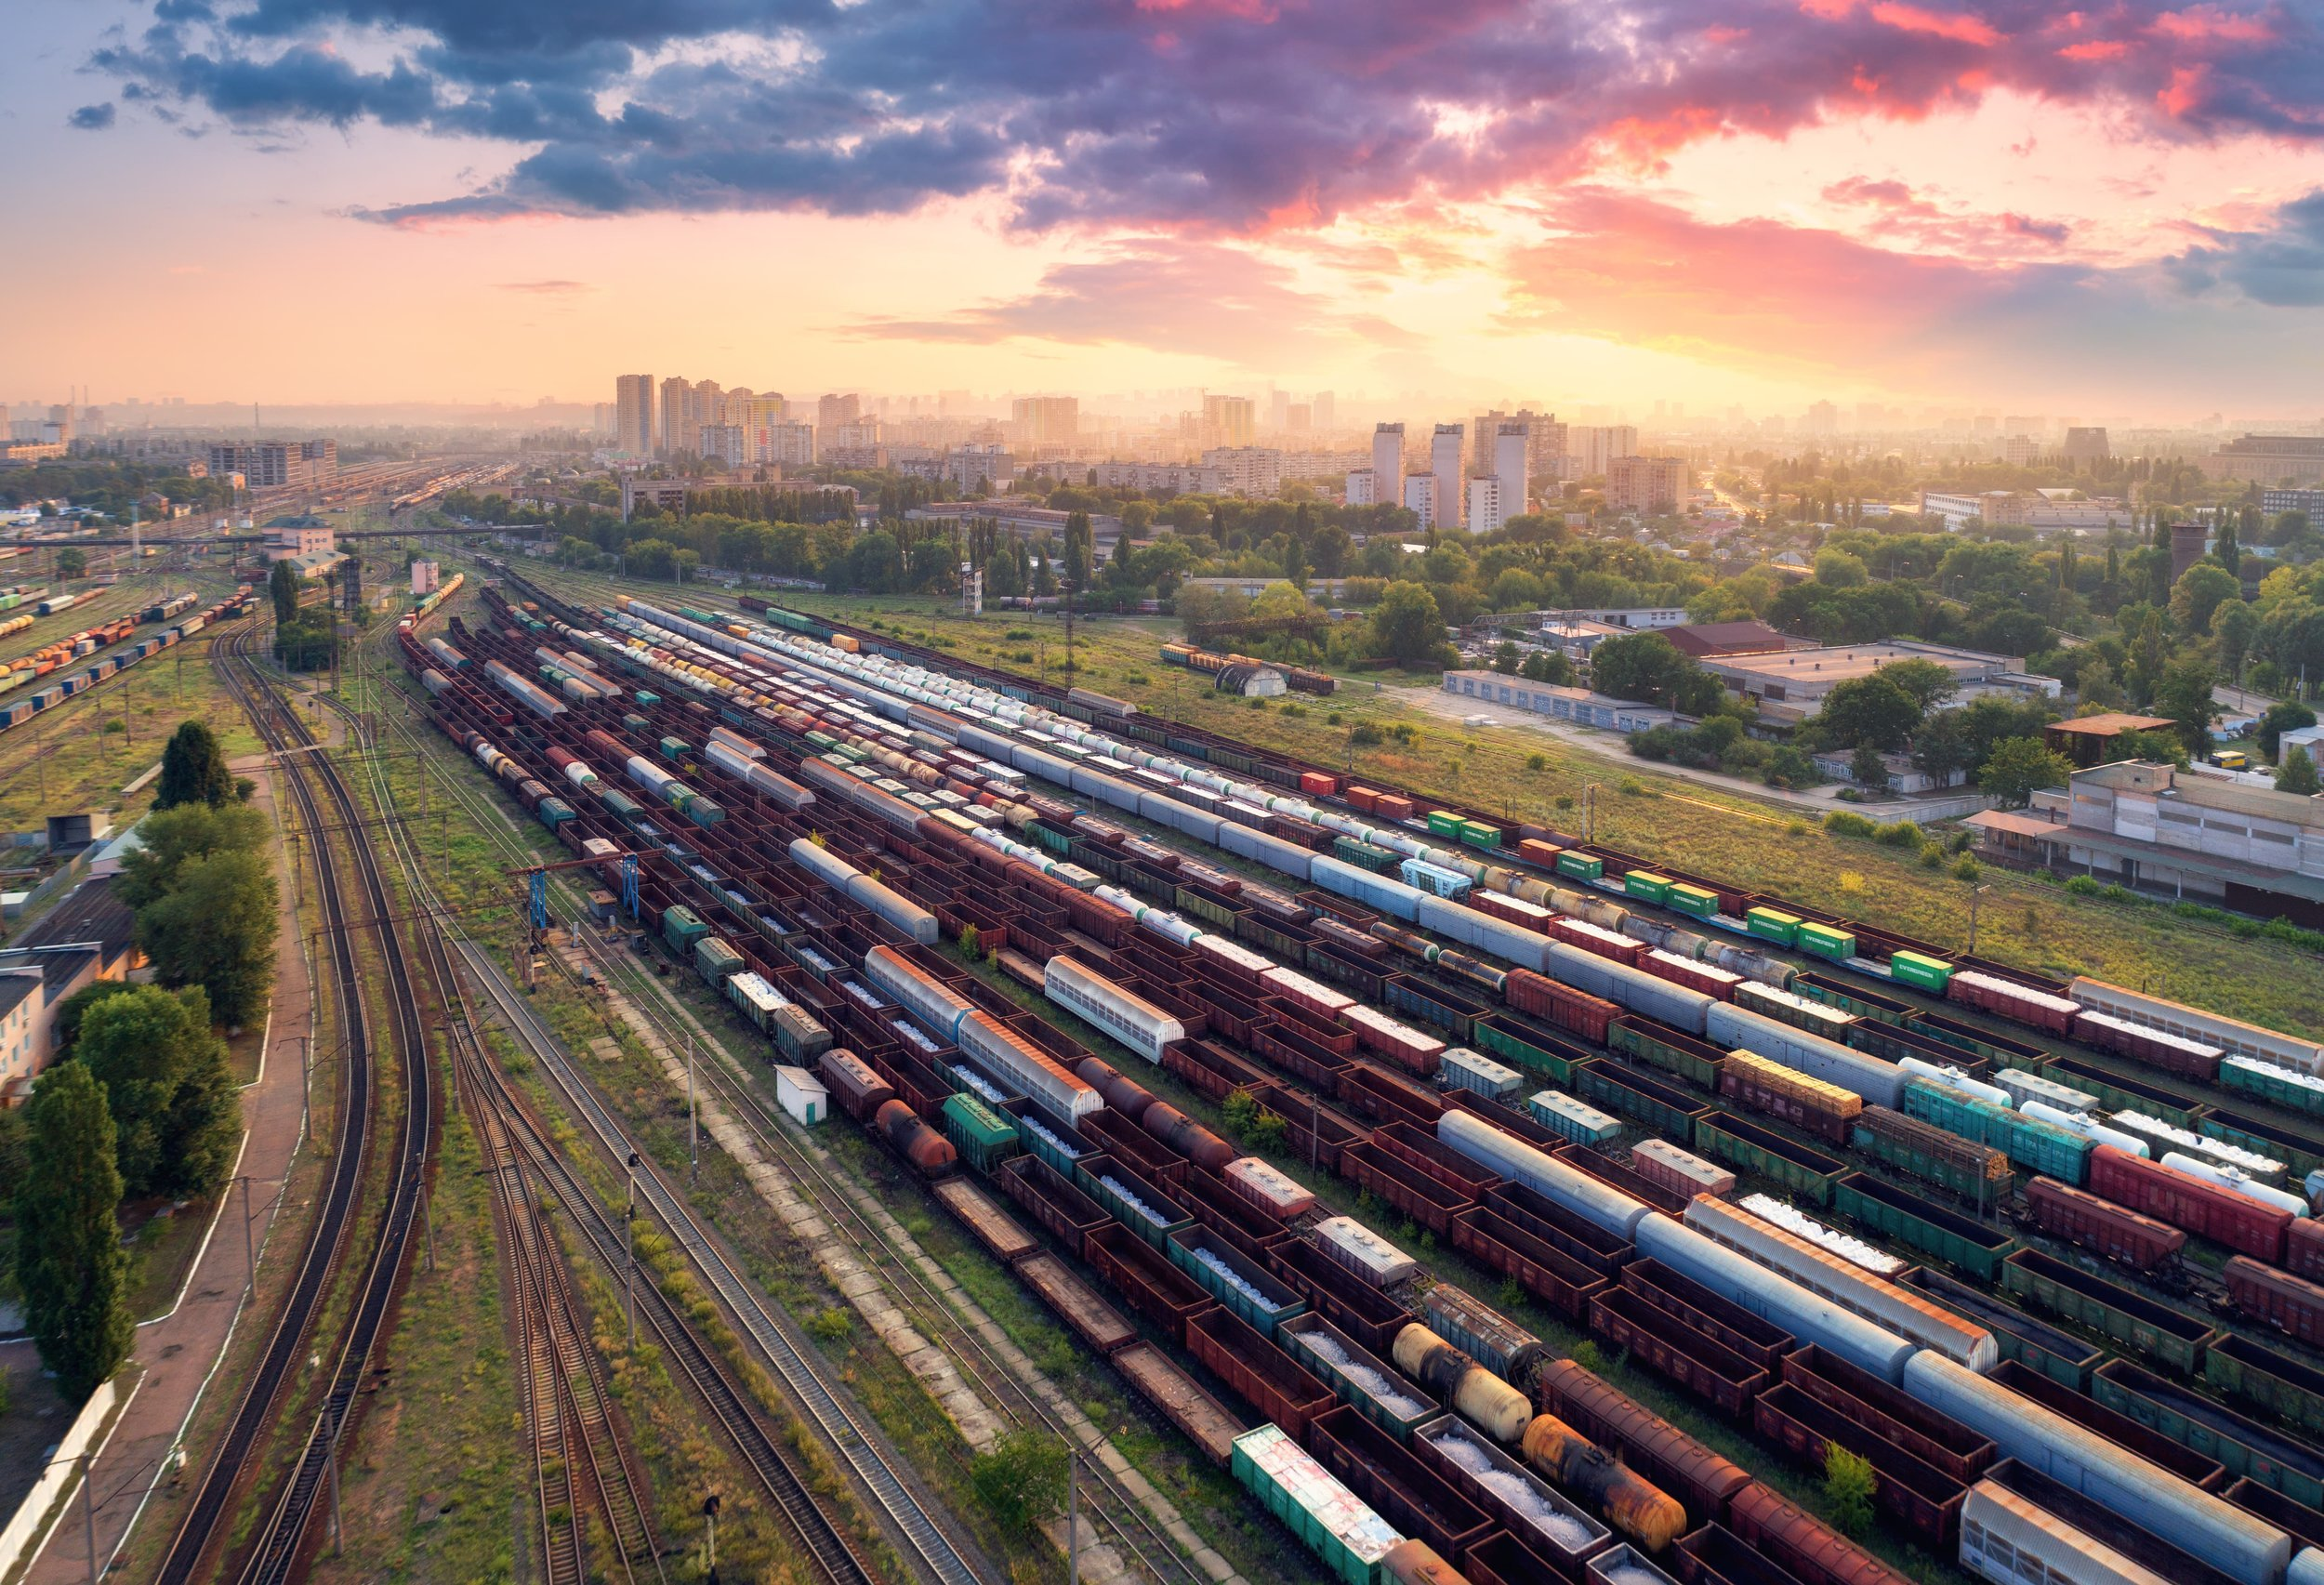 aerial-view-of-colorful-freight-trains-railway-PX77SW3-min.jpg